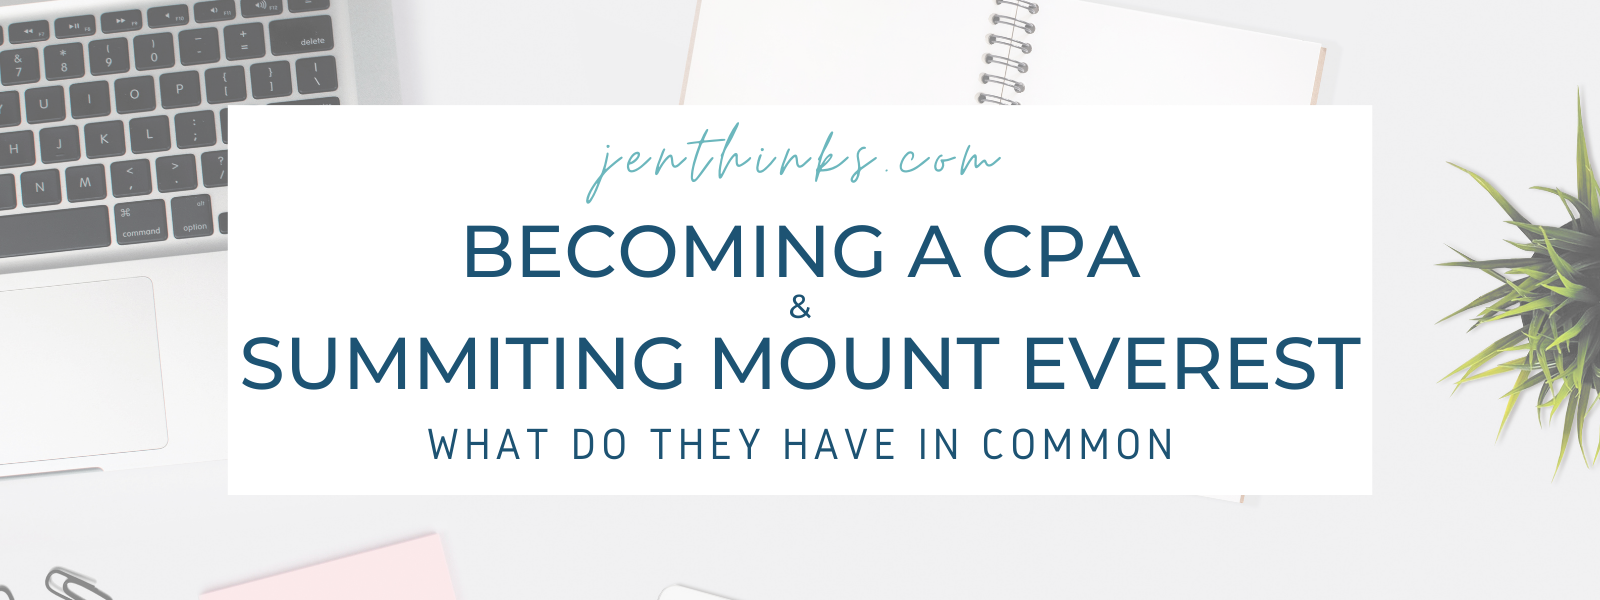 CPA CFE 2021 Study Plan – 5 Months Before CFE